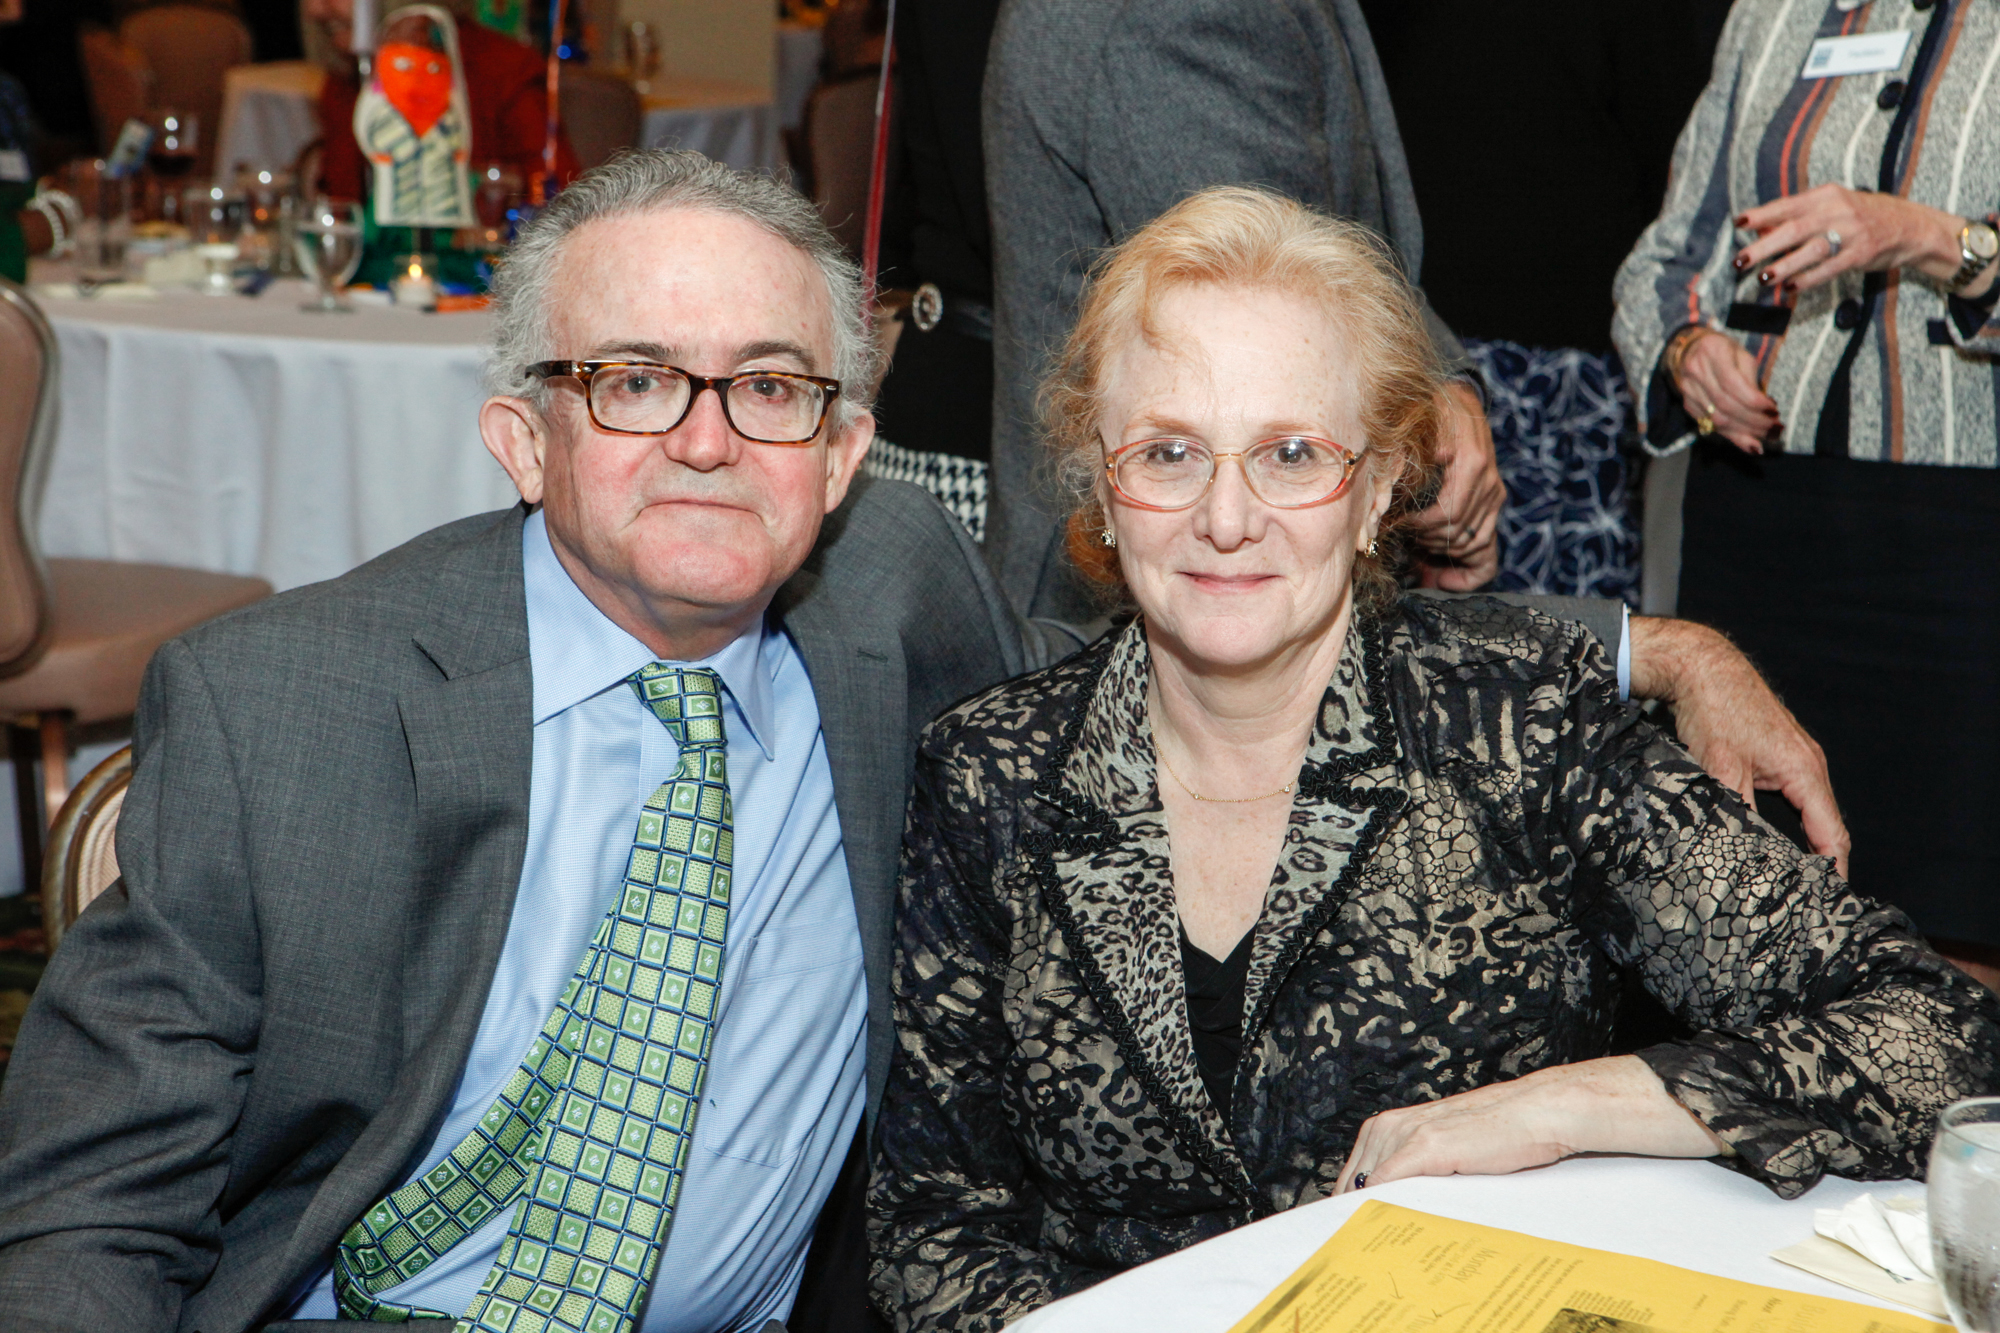 Taken at Kidsbridge's 11th Annual Humanitarian Awards Celebration, held at the Trenton Country Club in Trenton, N.J. Thursday, November 9, 2017. (Photo by Cie Stroud for Kidsbridge)